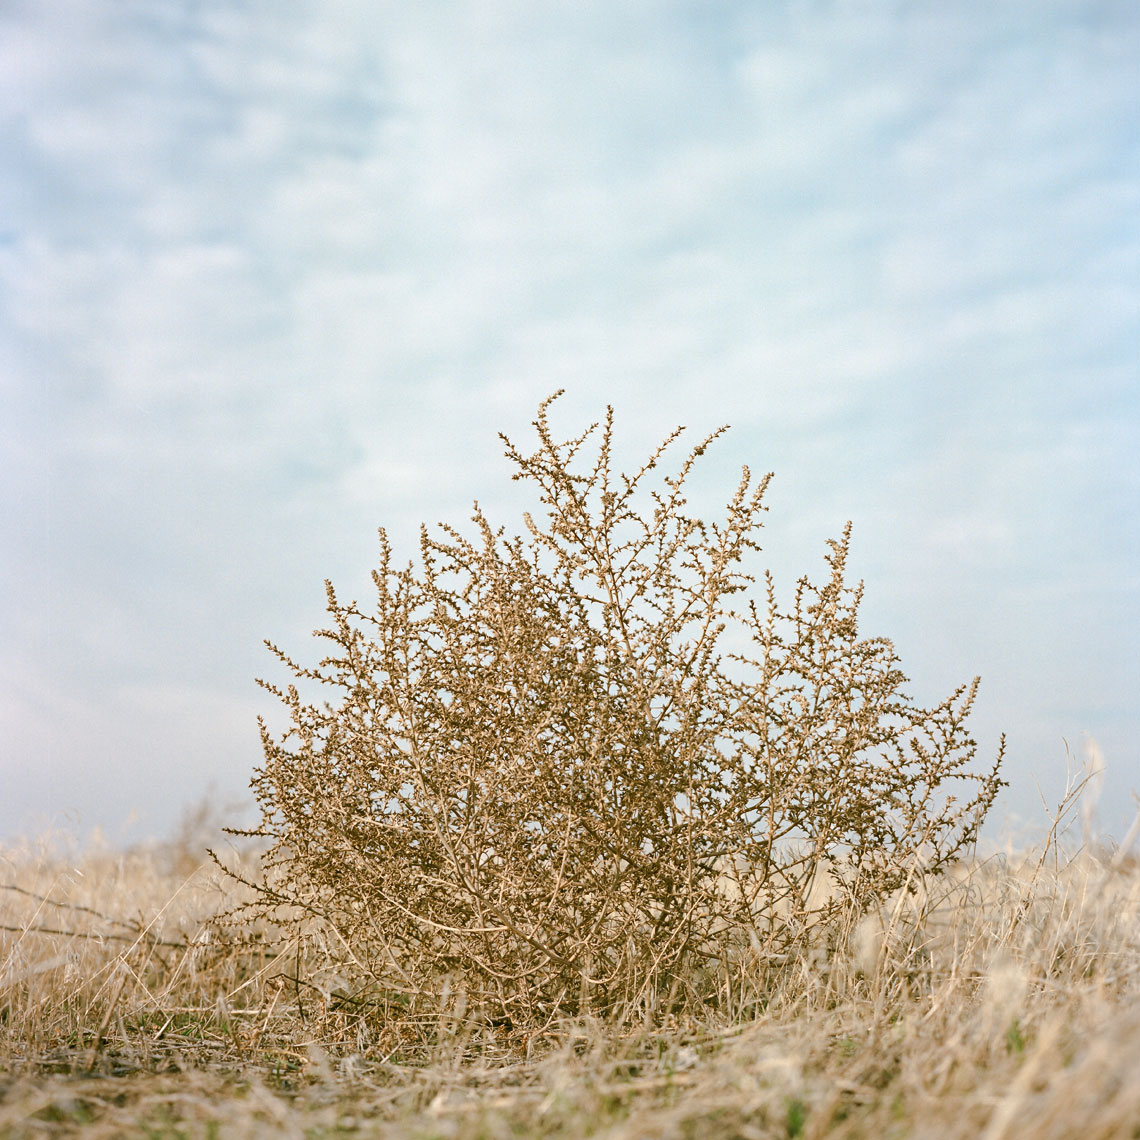 Portrait of a Tumble Weed  - 8505#08